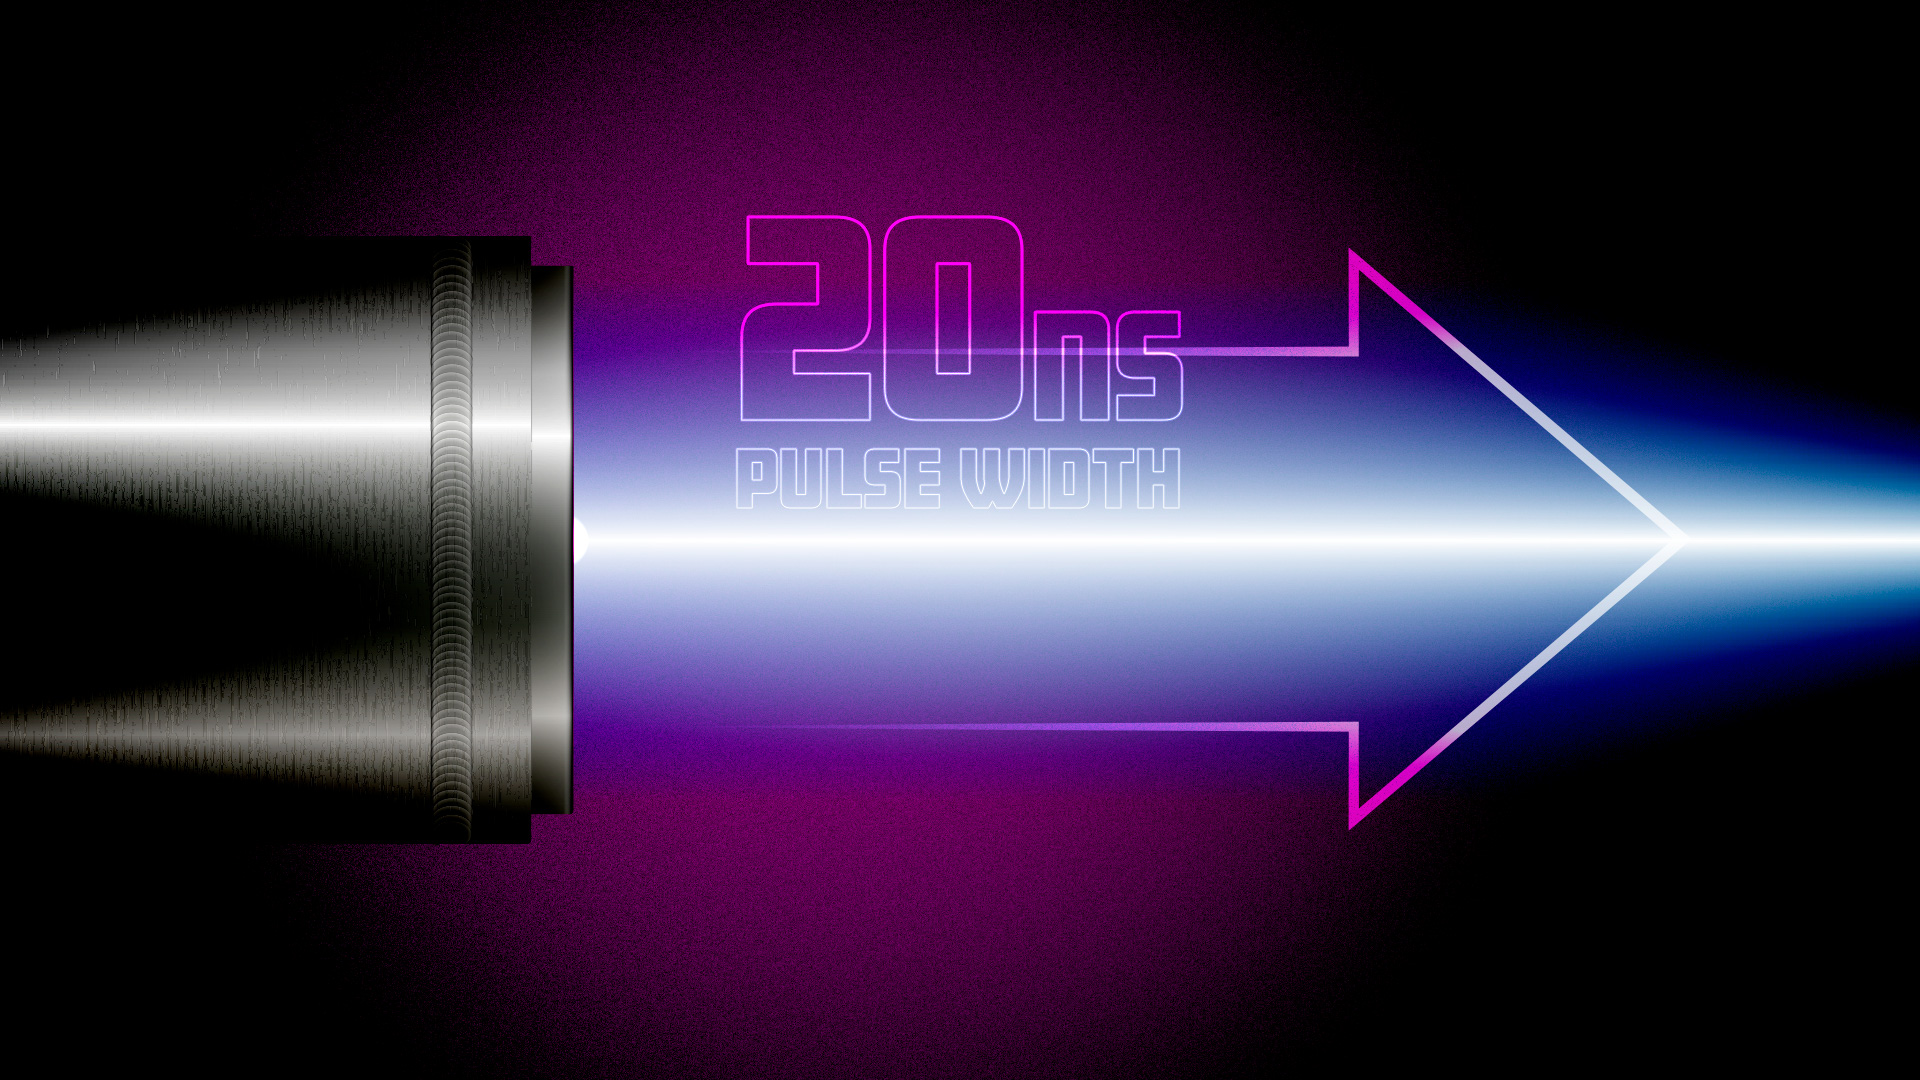 Scandiflash 20 nanosecond pulse width for fast gating times.